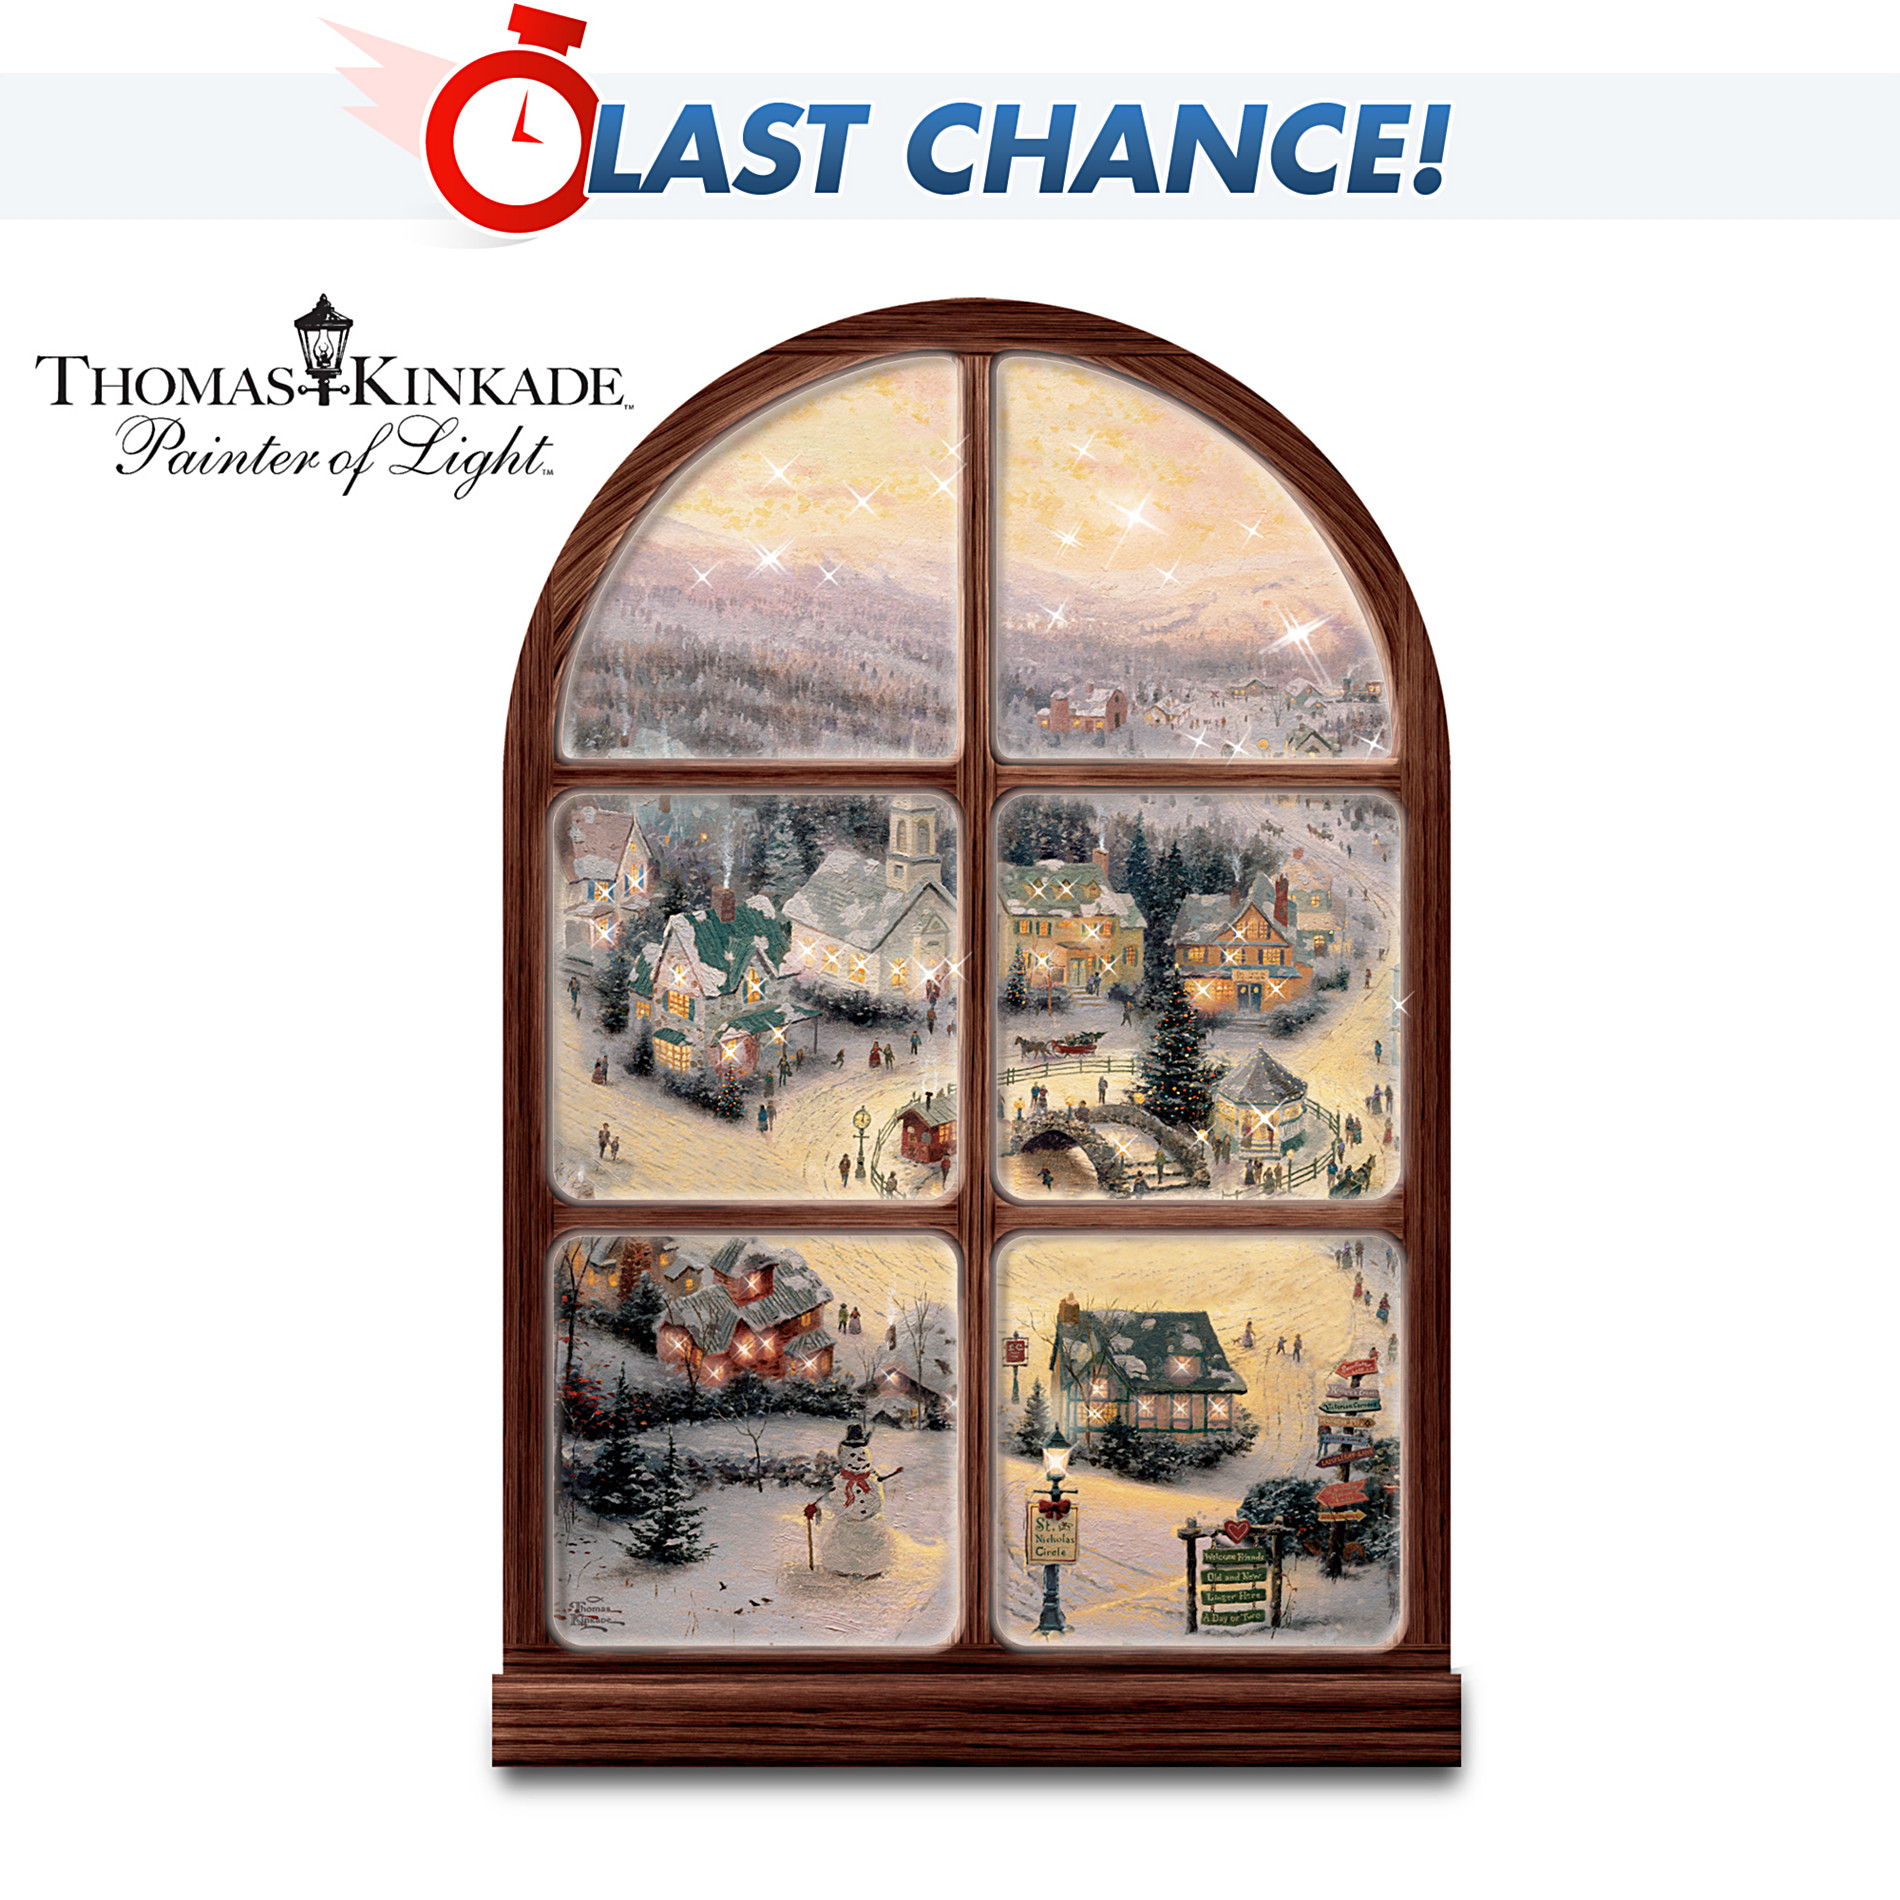 The Bradford Exchange Thomas Kinkade Illuminated Musical Window Wall Decor: Holiday Lights at Sears.com